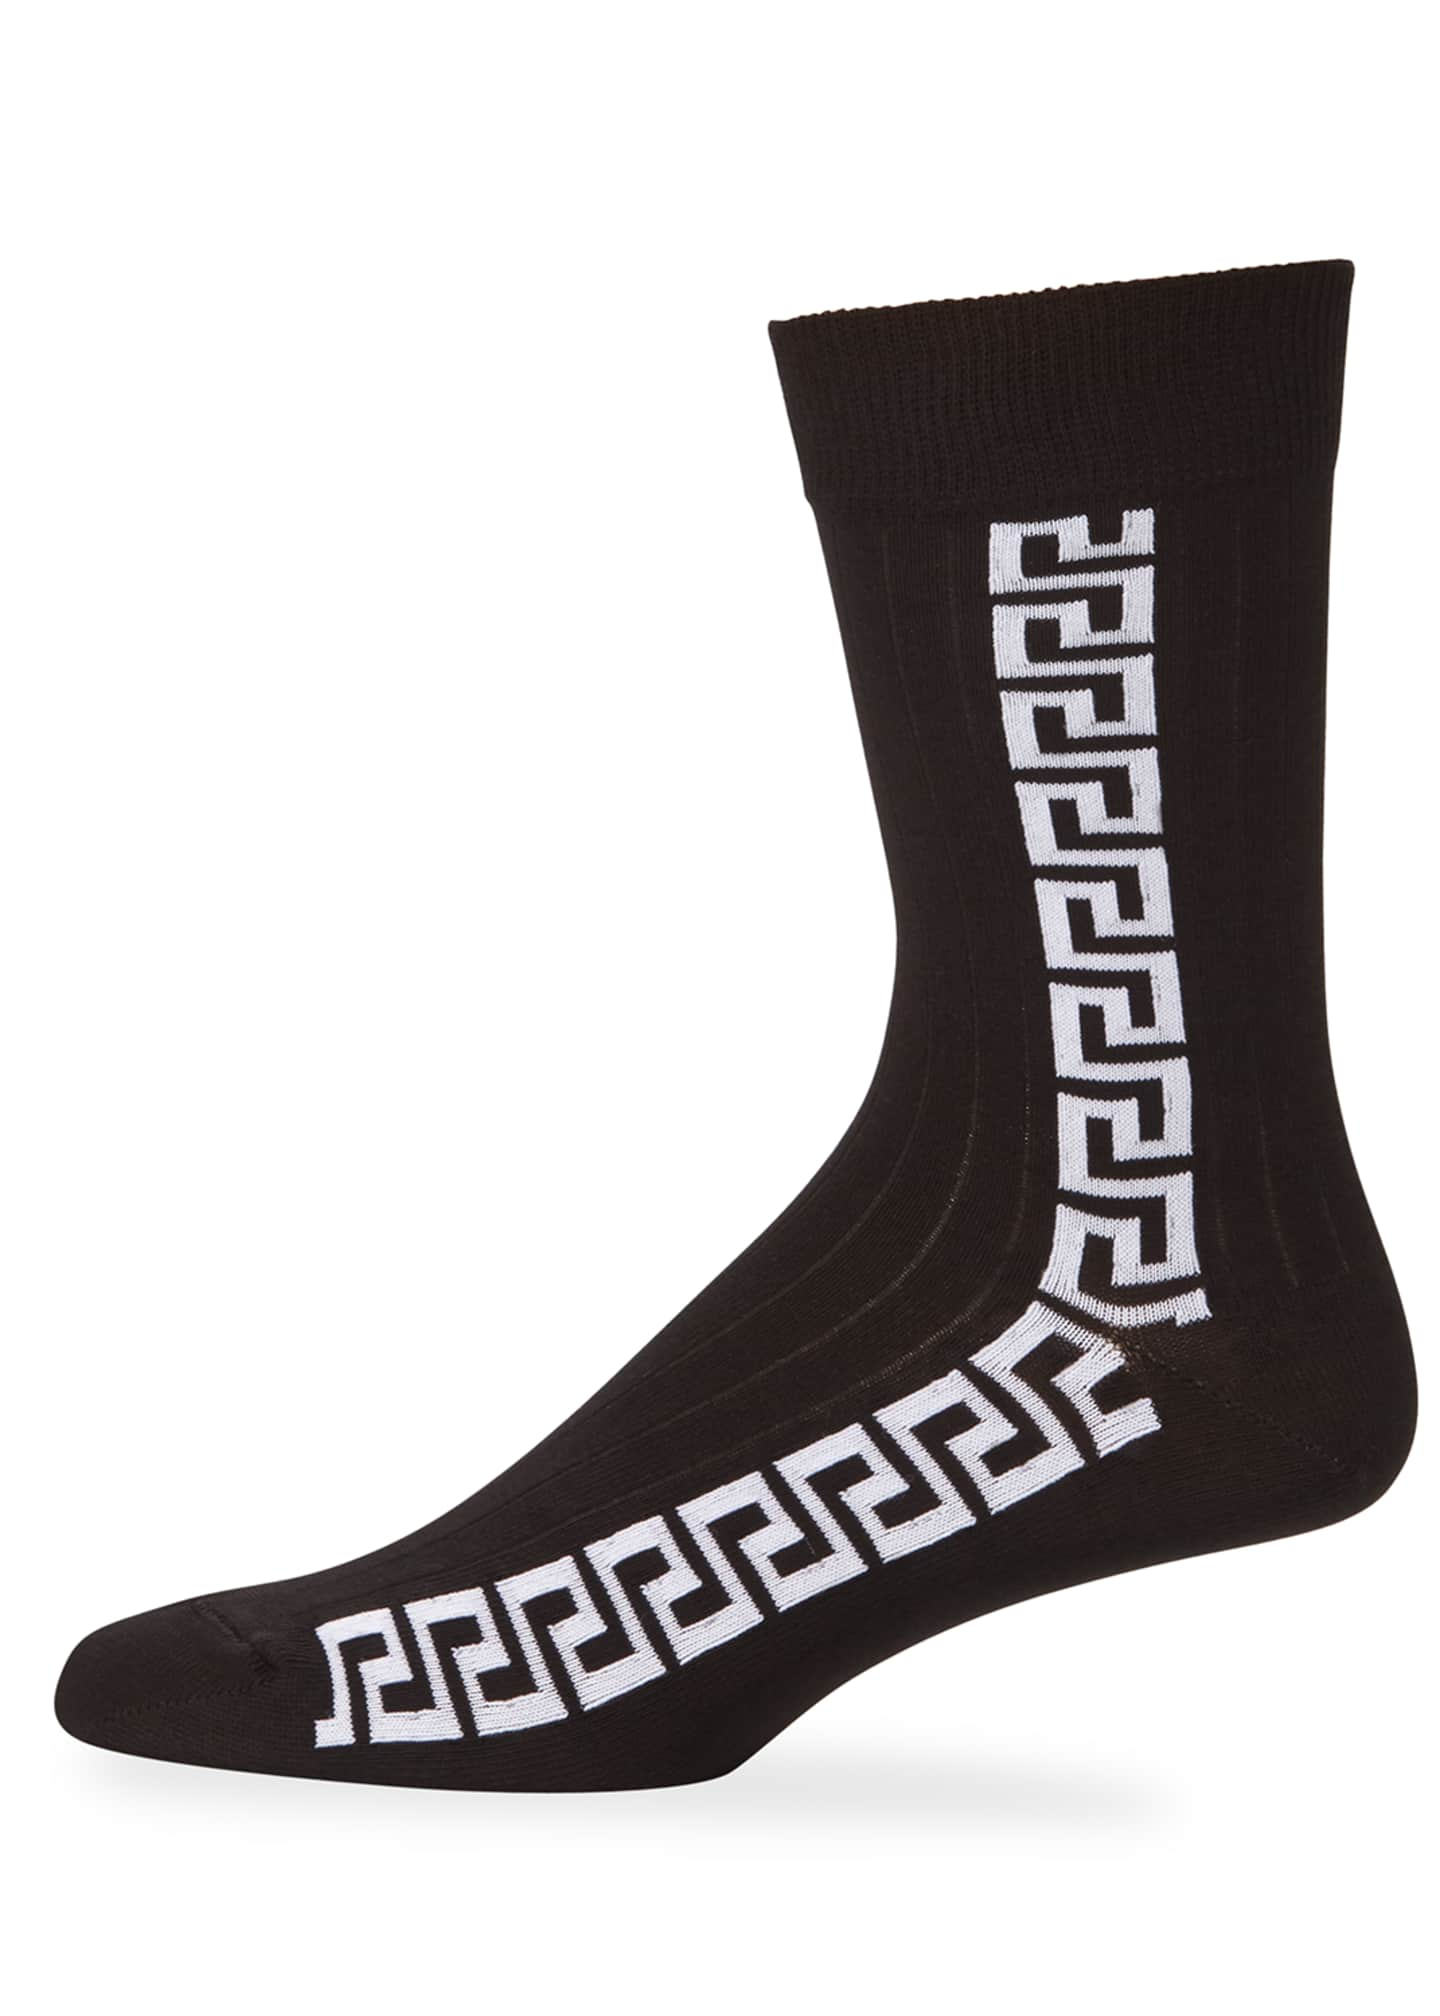 Versace Men's Athletic Vertical Stripe Socks